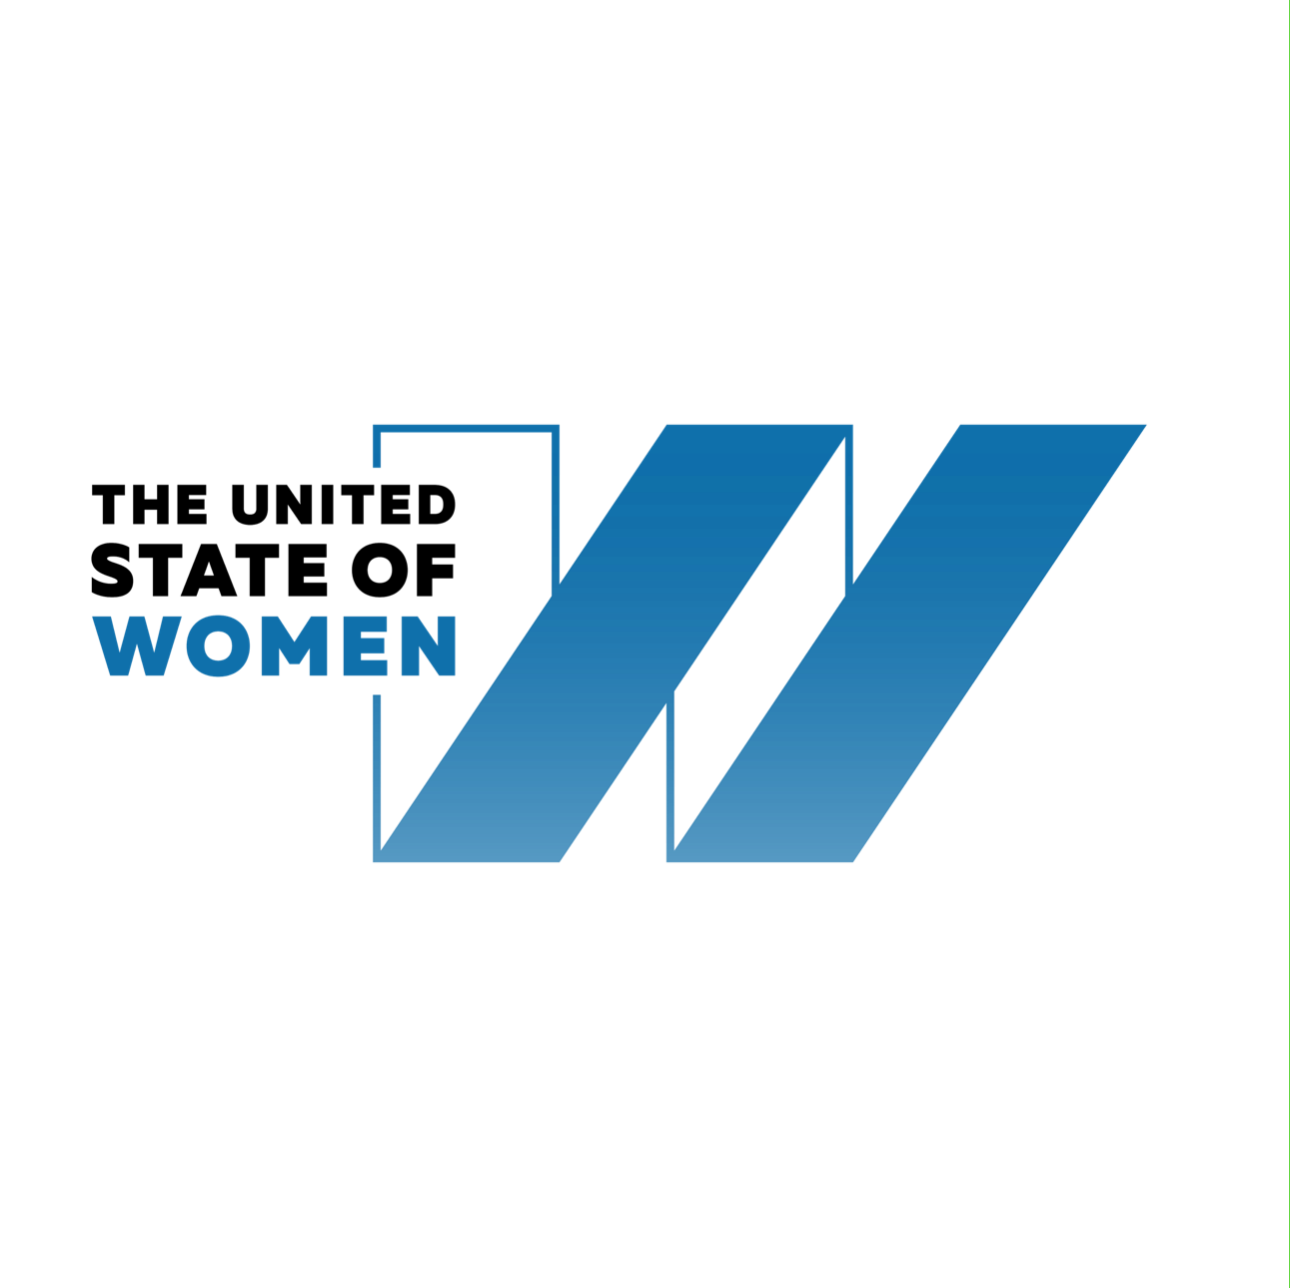 The United State of Women, logo